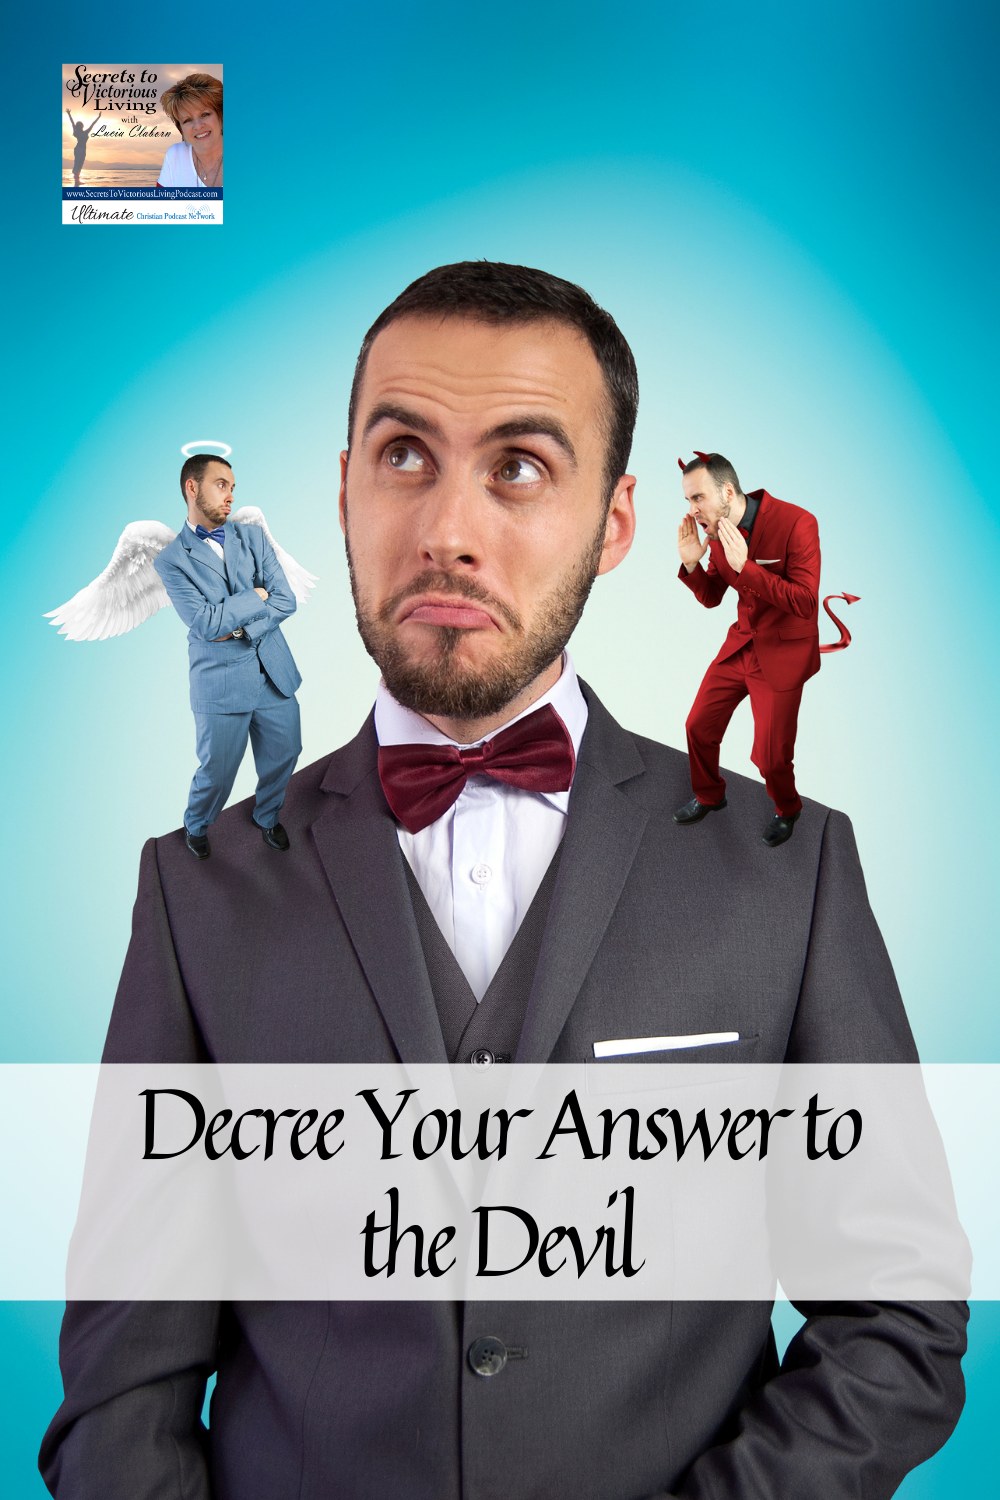 On today's show Lucia continues the Decree A Thing series. In this episode, she shares how to Decree Your Answer to the Devil when he whispers in your ear that you are not going to make it!